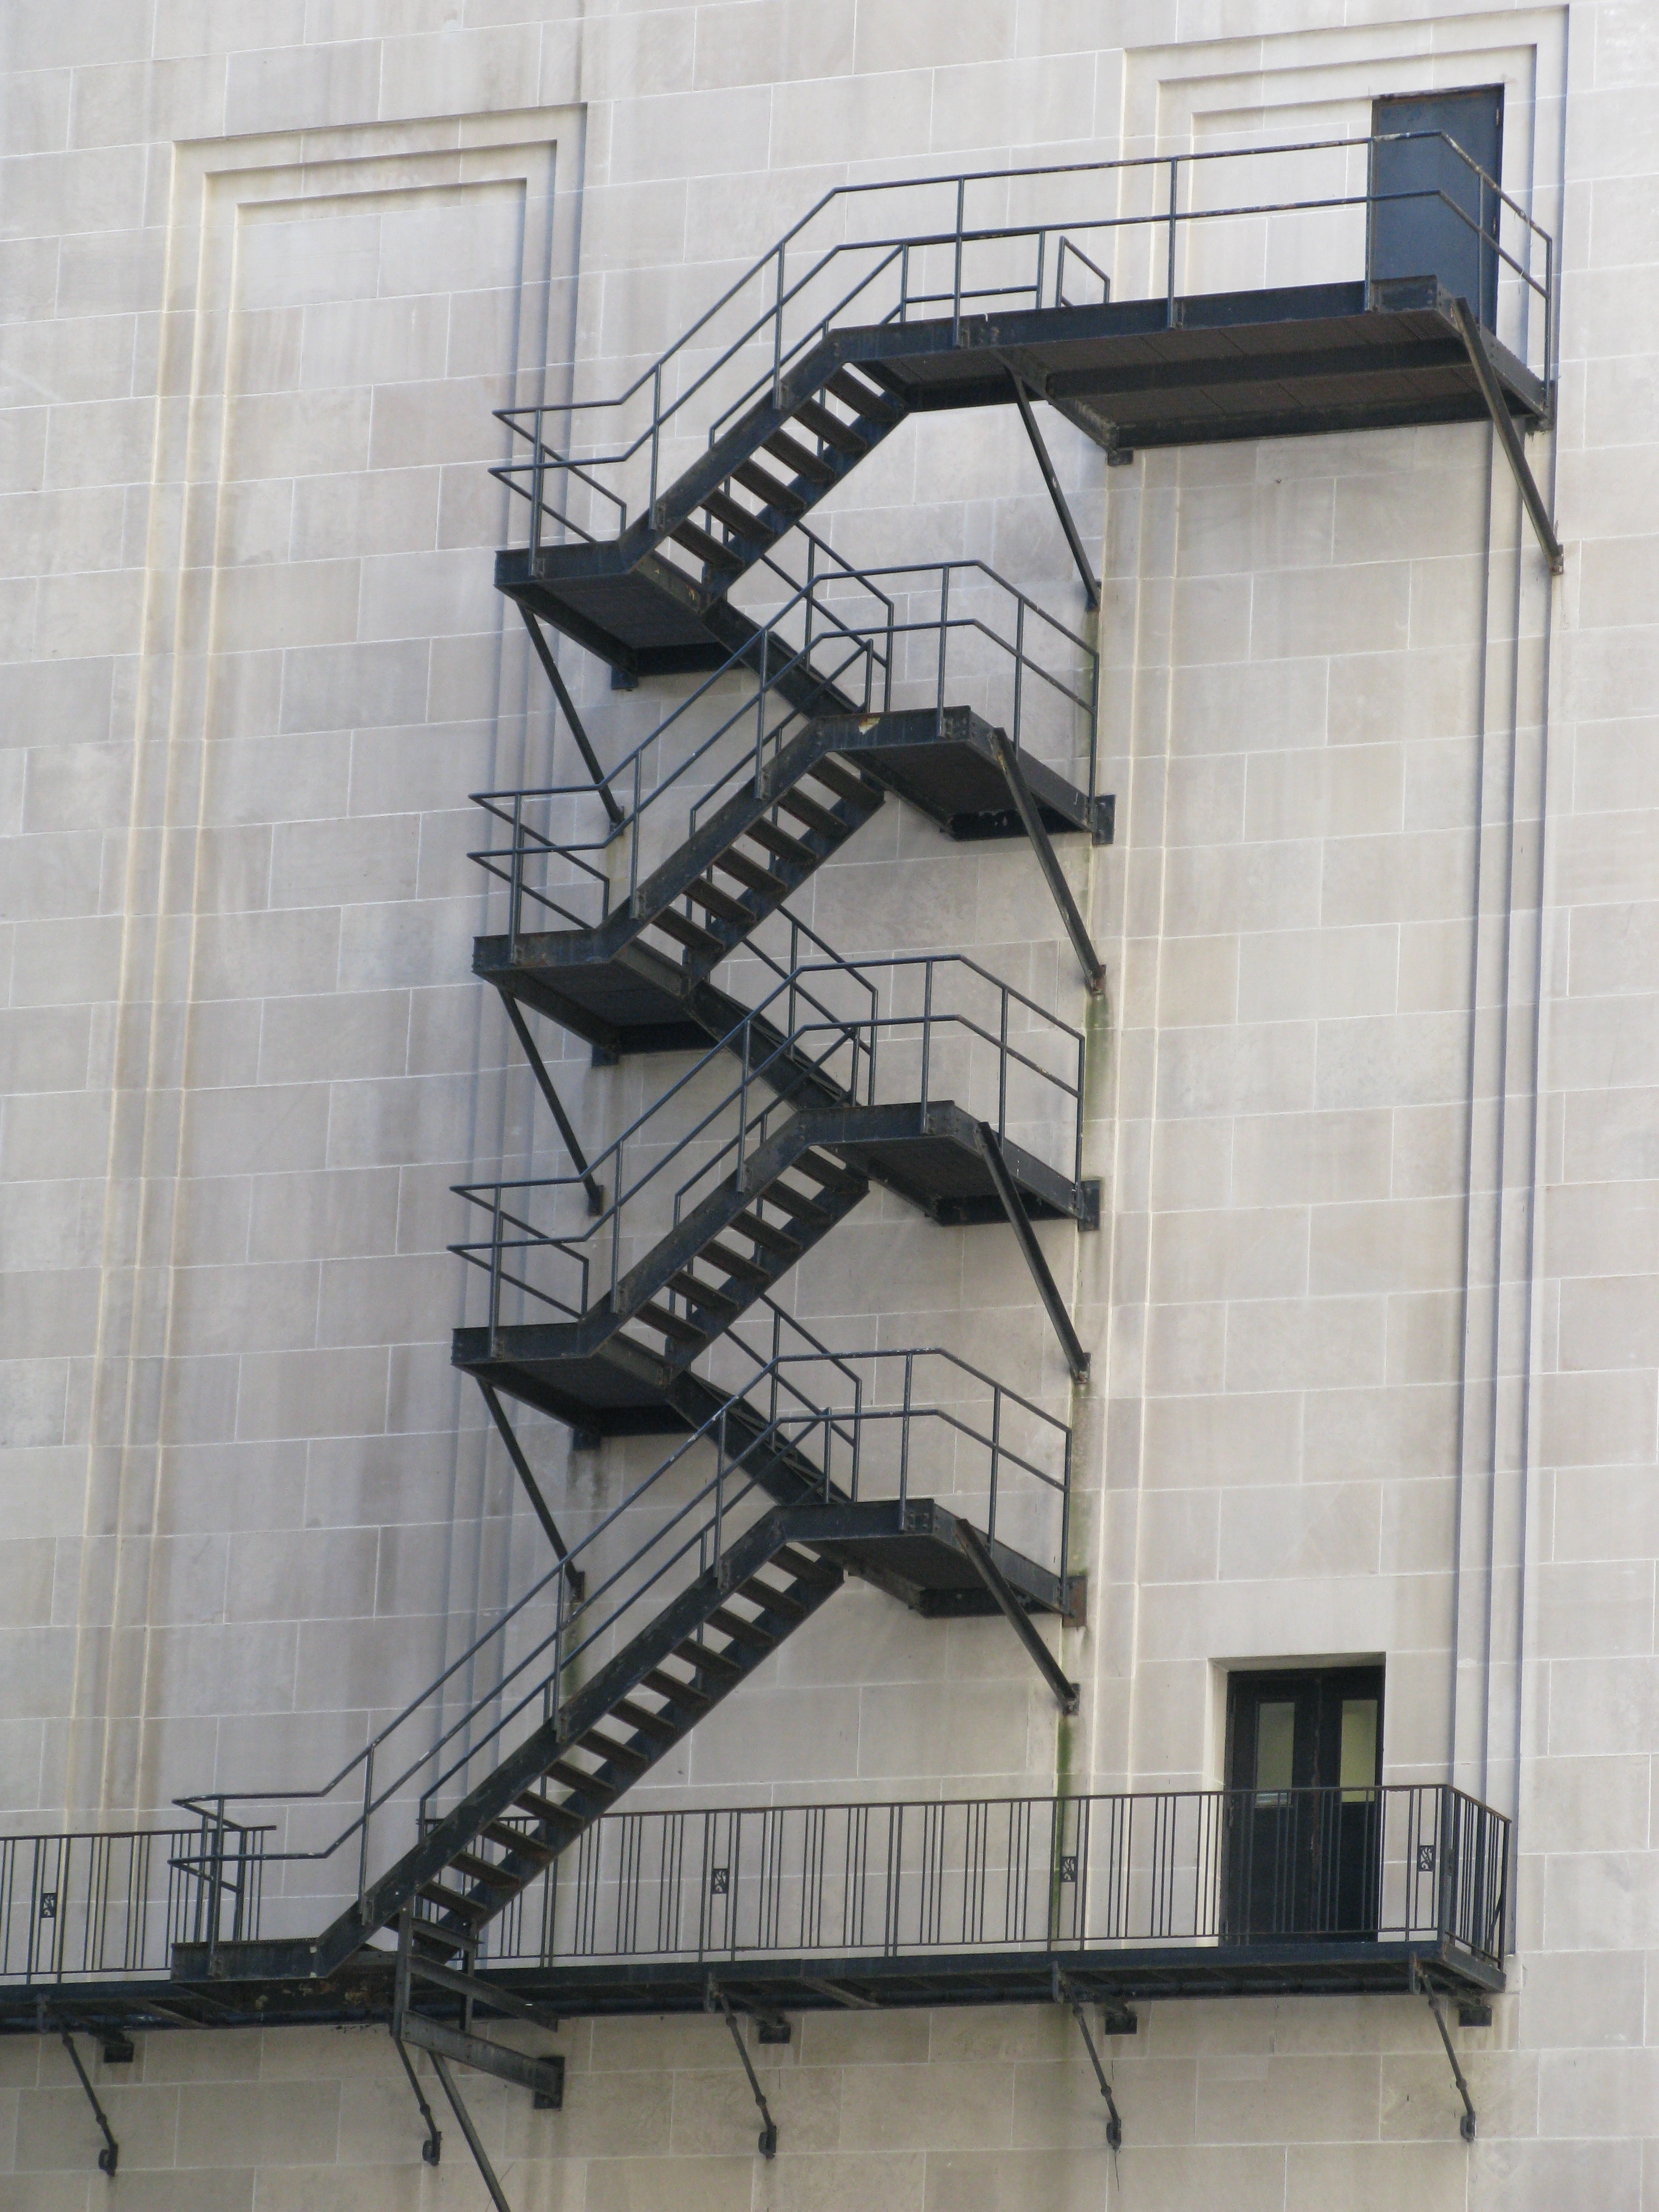 File:Chicago Board Of Trade Fire Escape Stairs